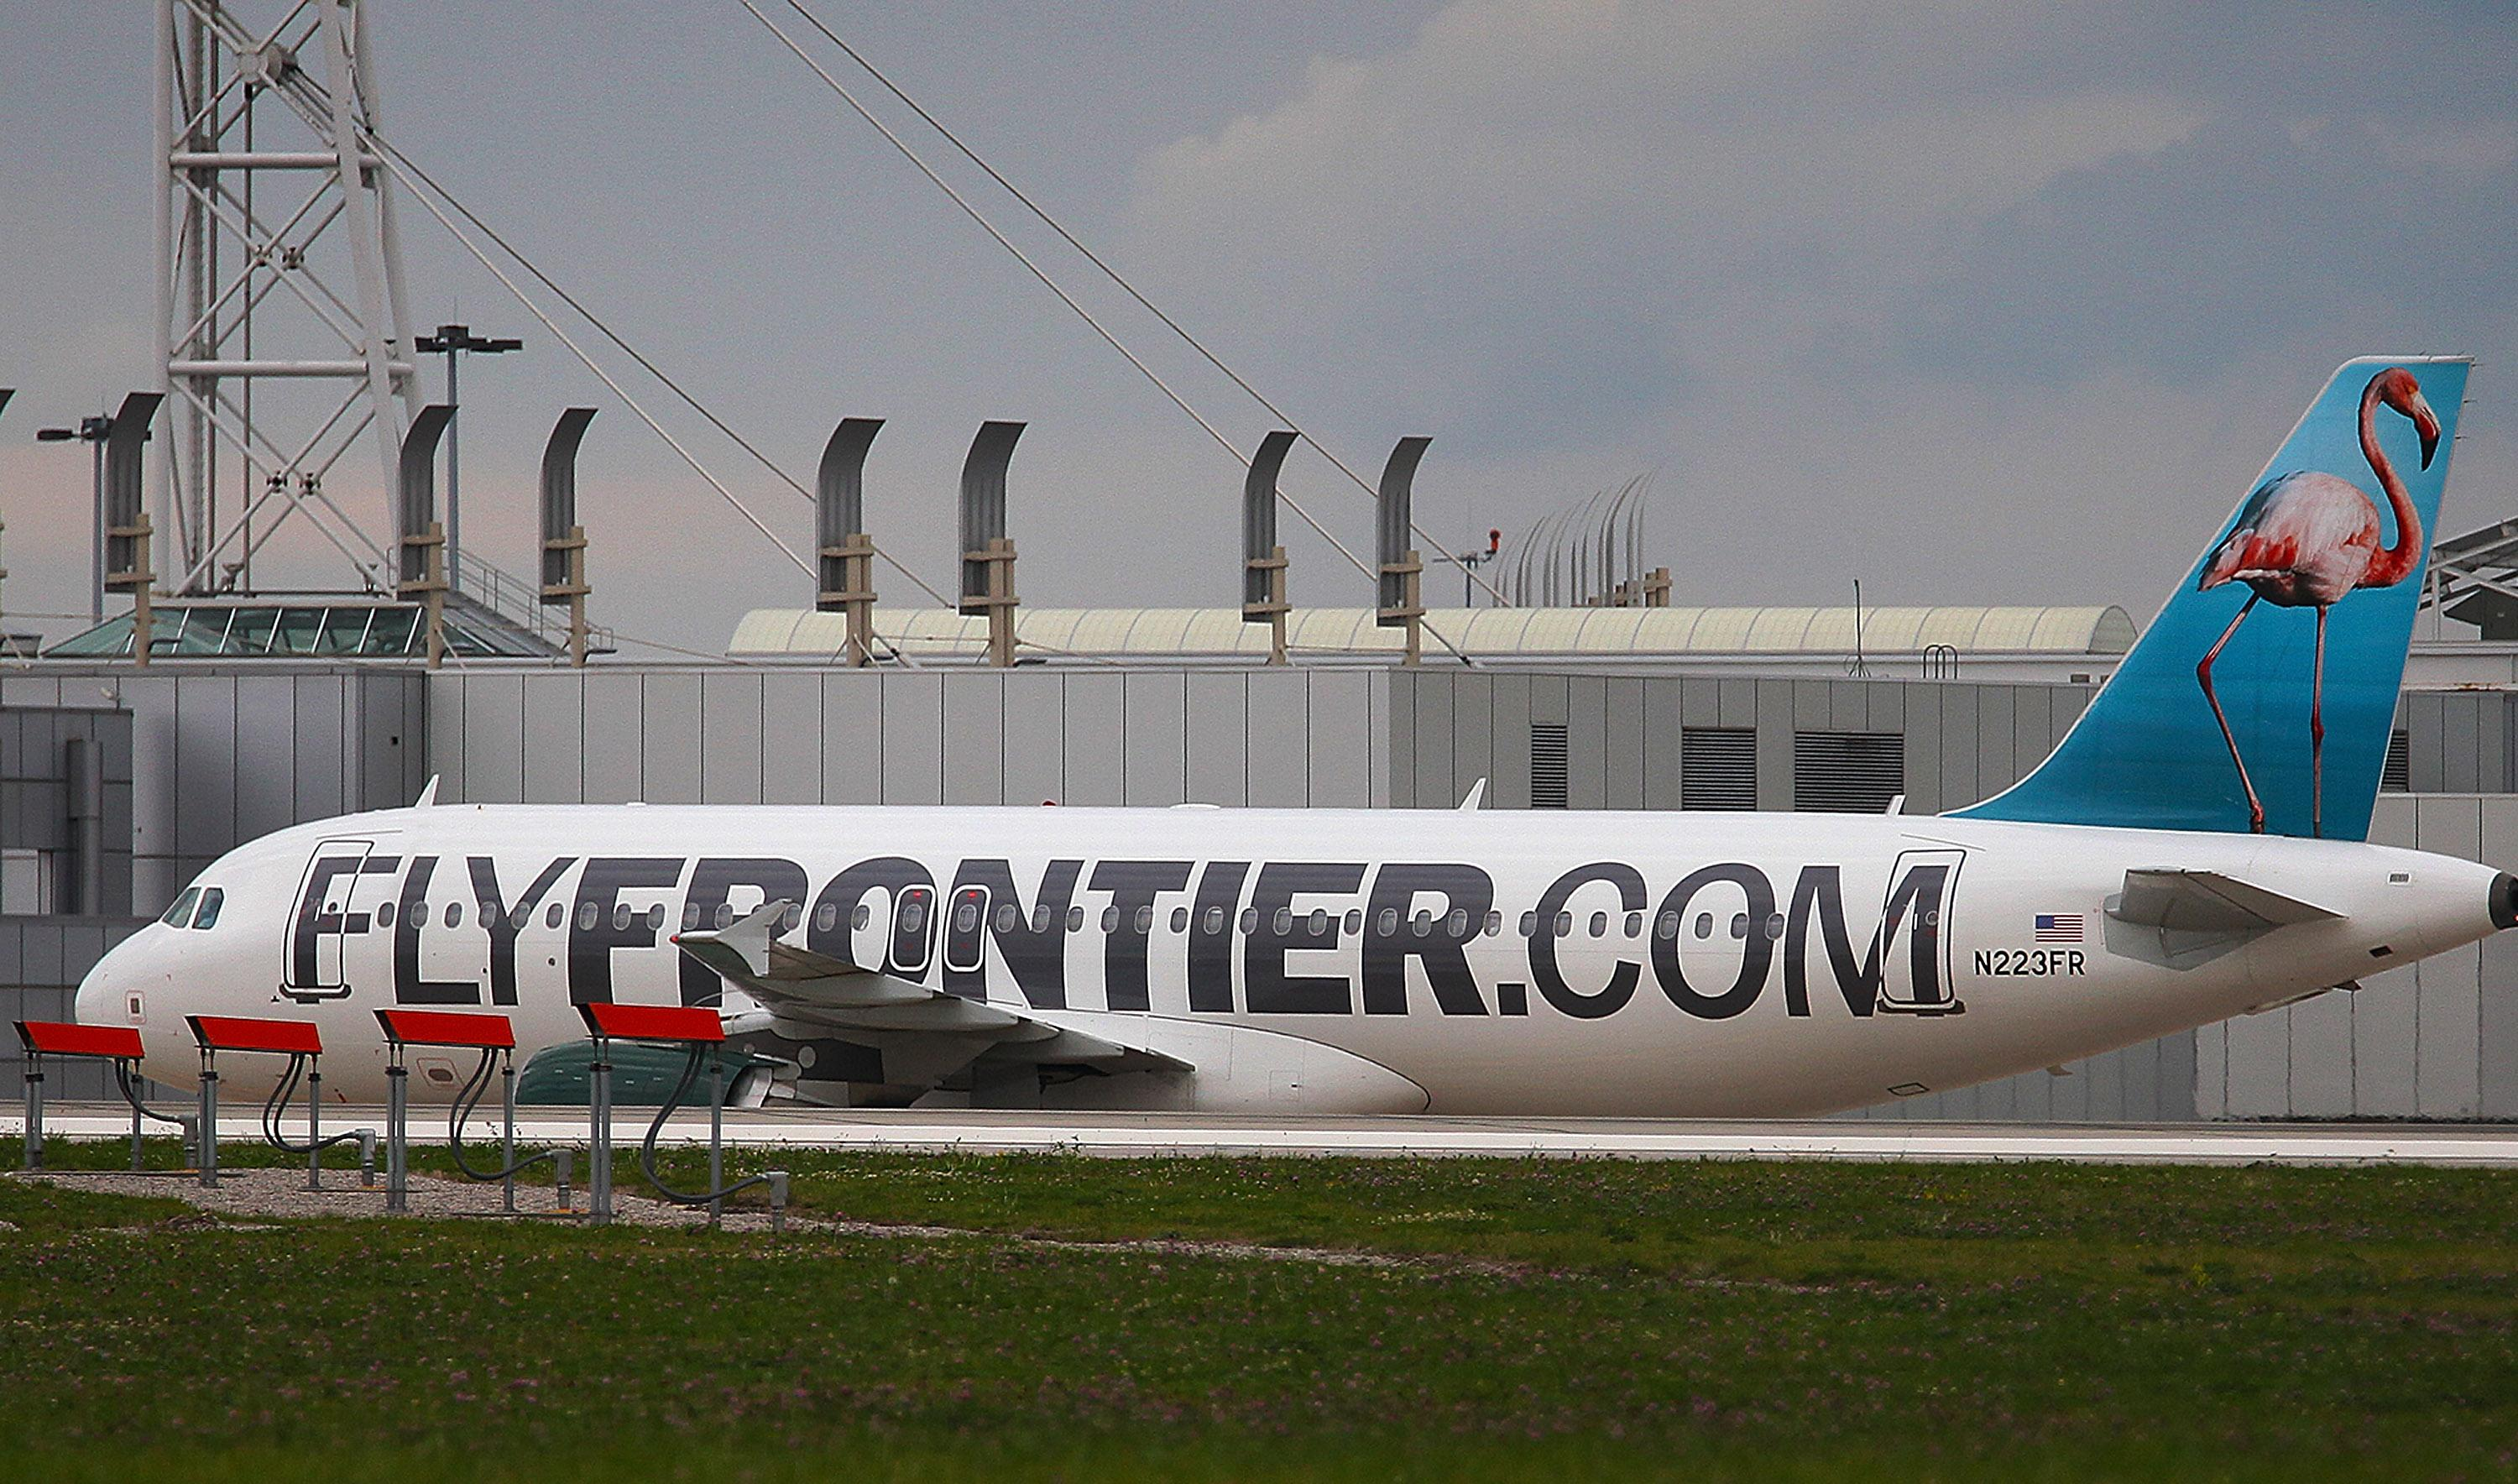 Two Women Sue Frontier Airlines Over Sexual Assaults by Passengers